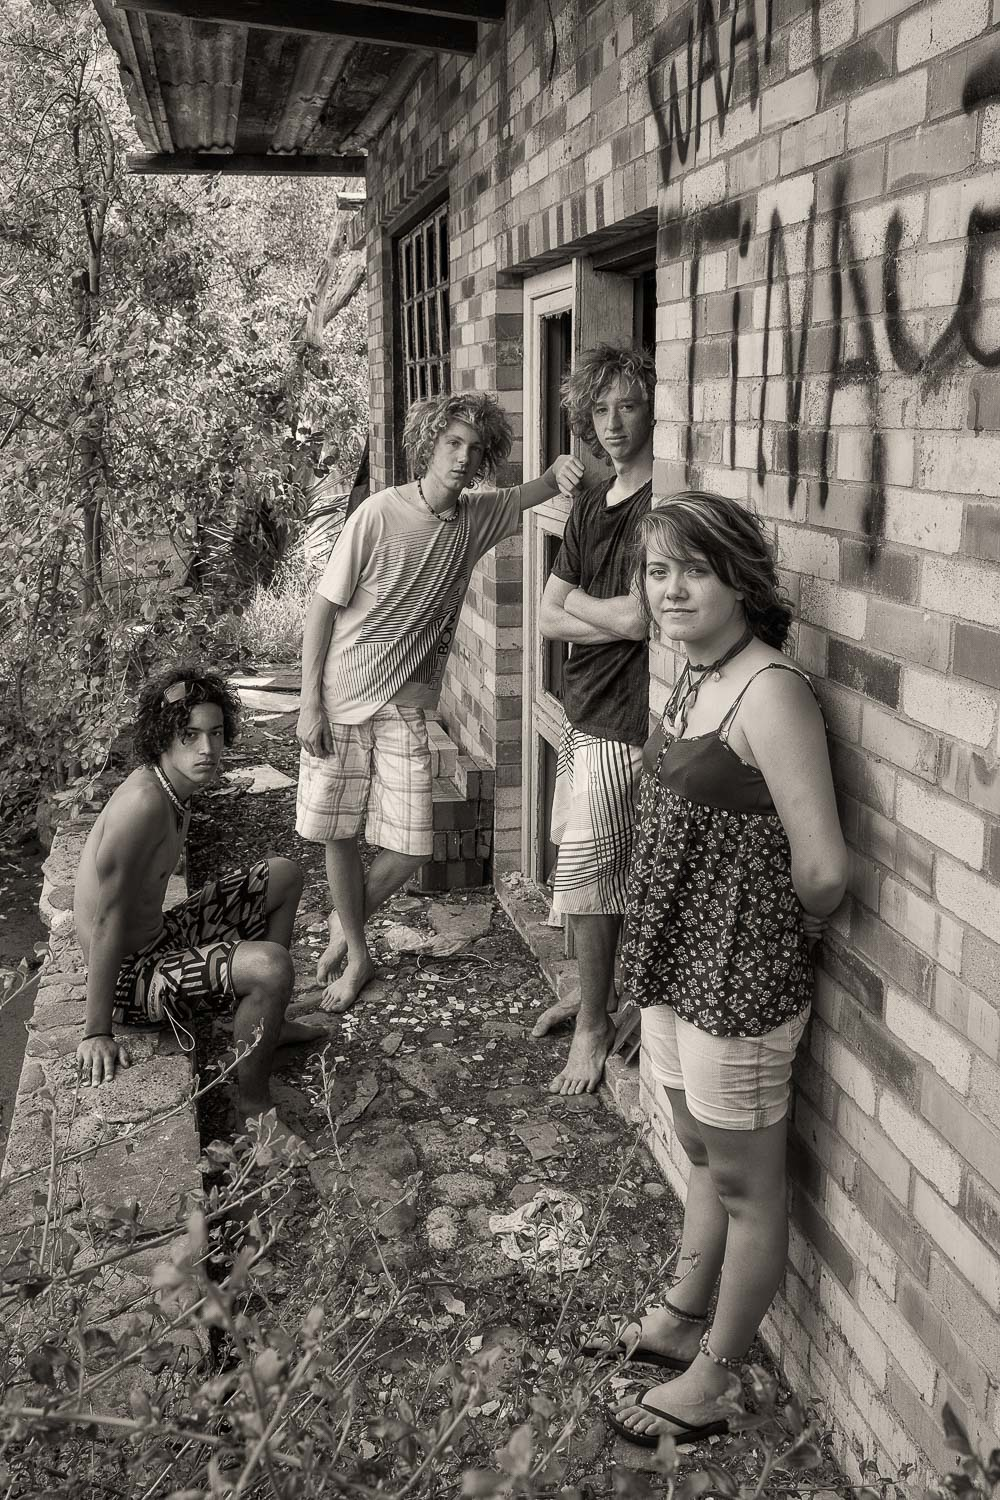 The four members of the band    Saida    at a derelict house in the town of    Seaspray, Australia   .